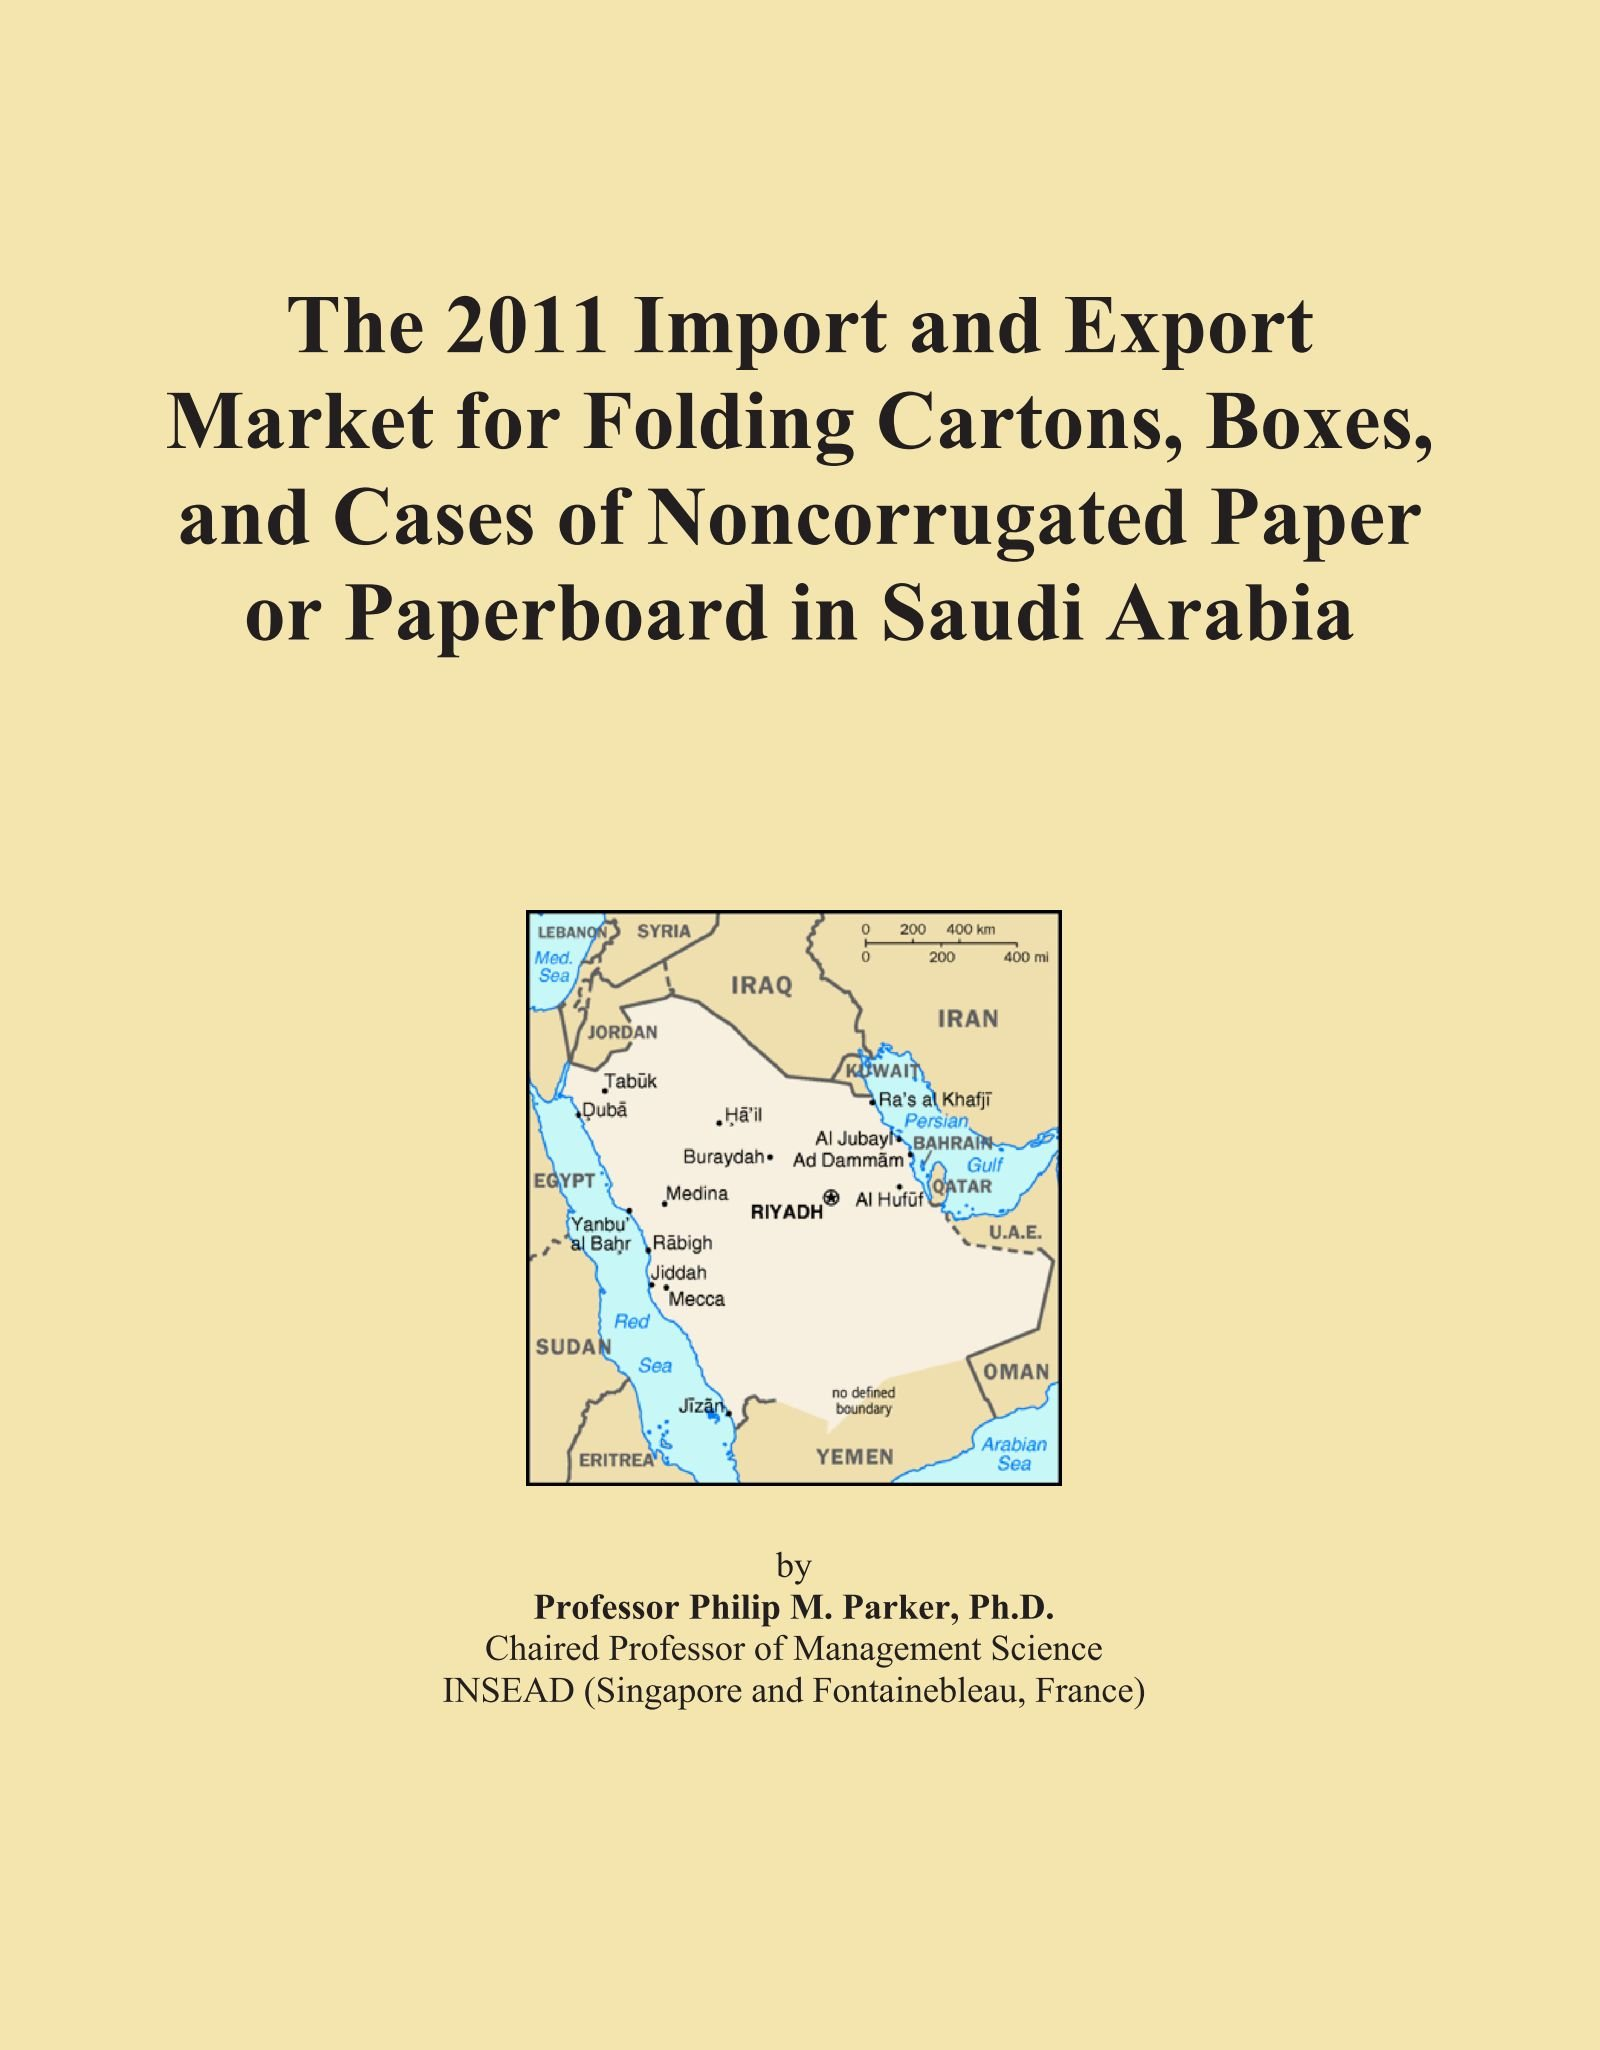 The 2011 Import and Export Market for Folding Cartons, Boxes, and Cases of Noncorrugated Paper or Paperboard in Saudi Arabia pdf